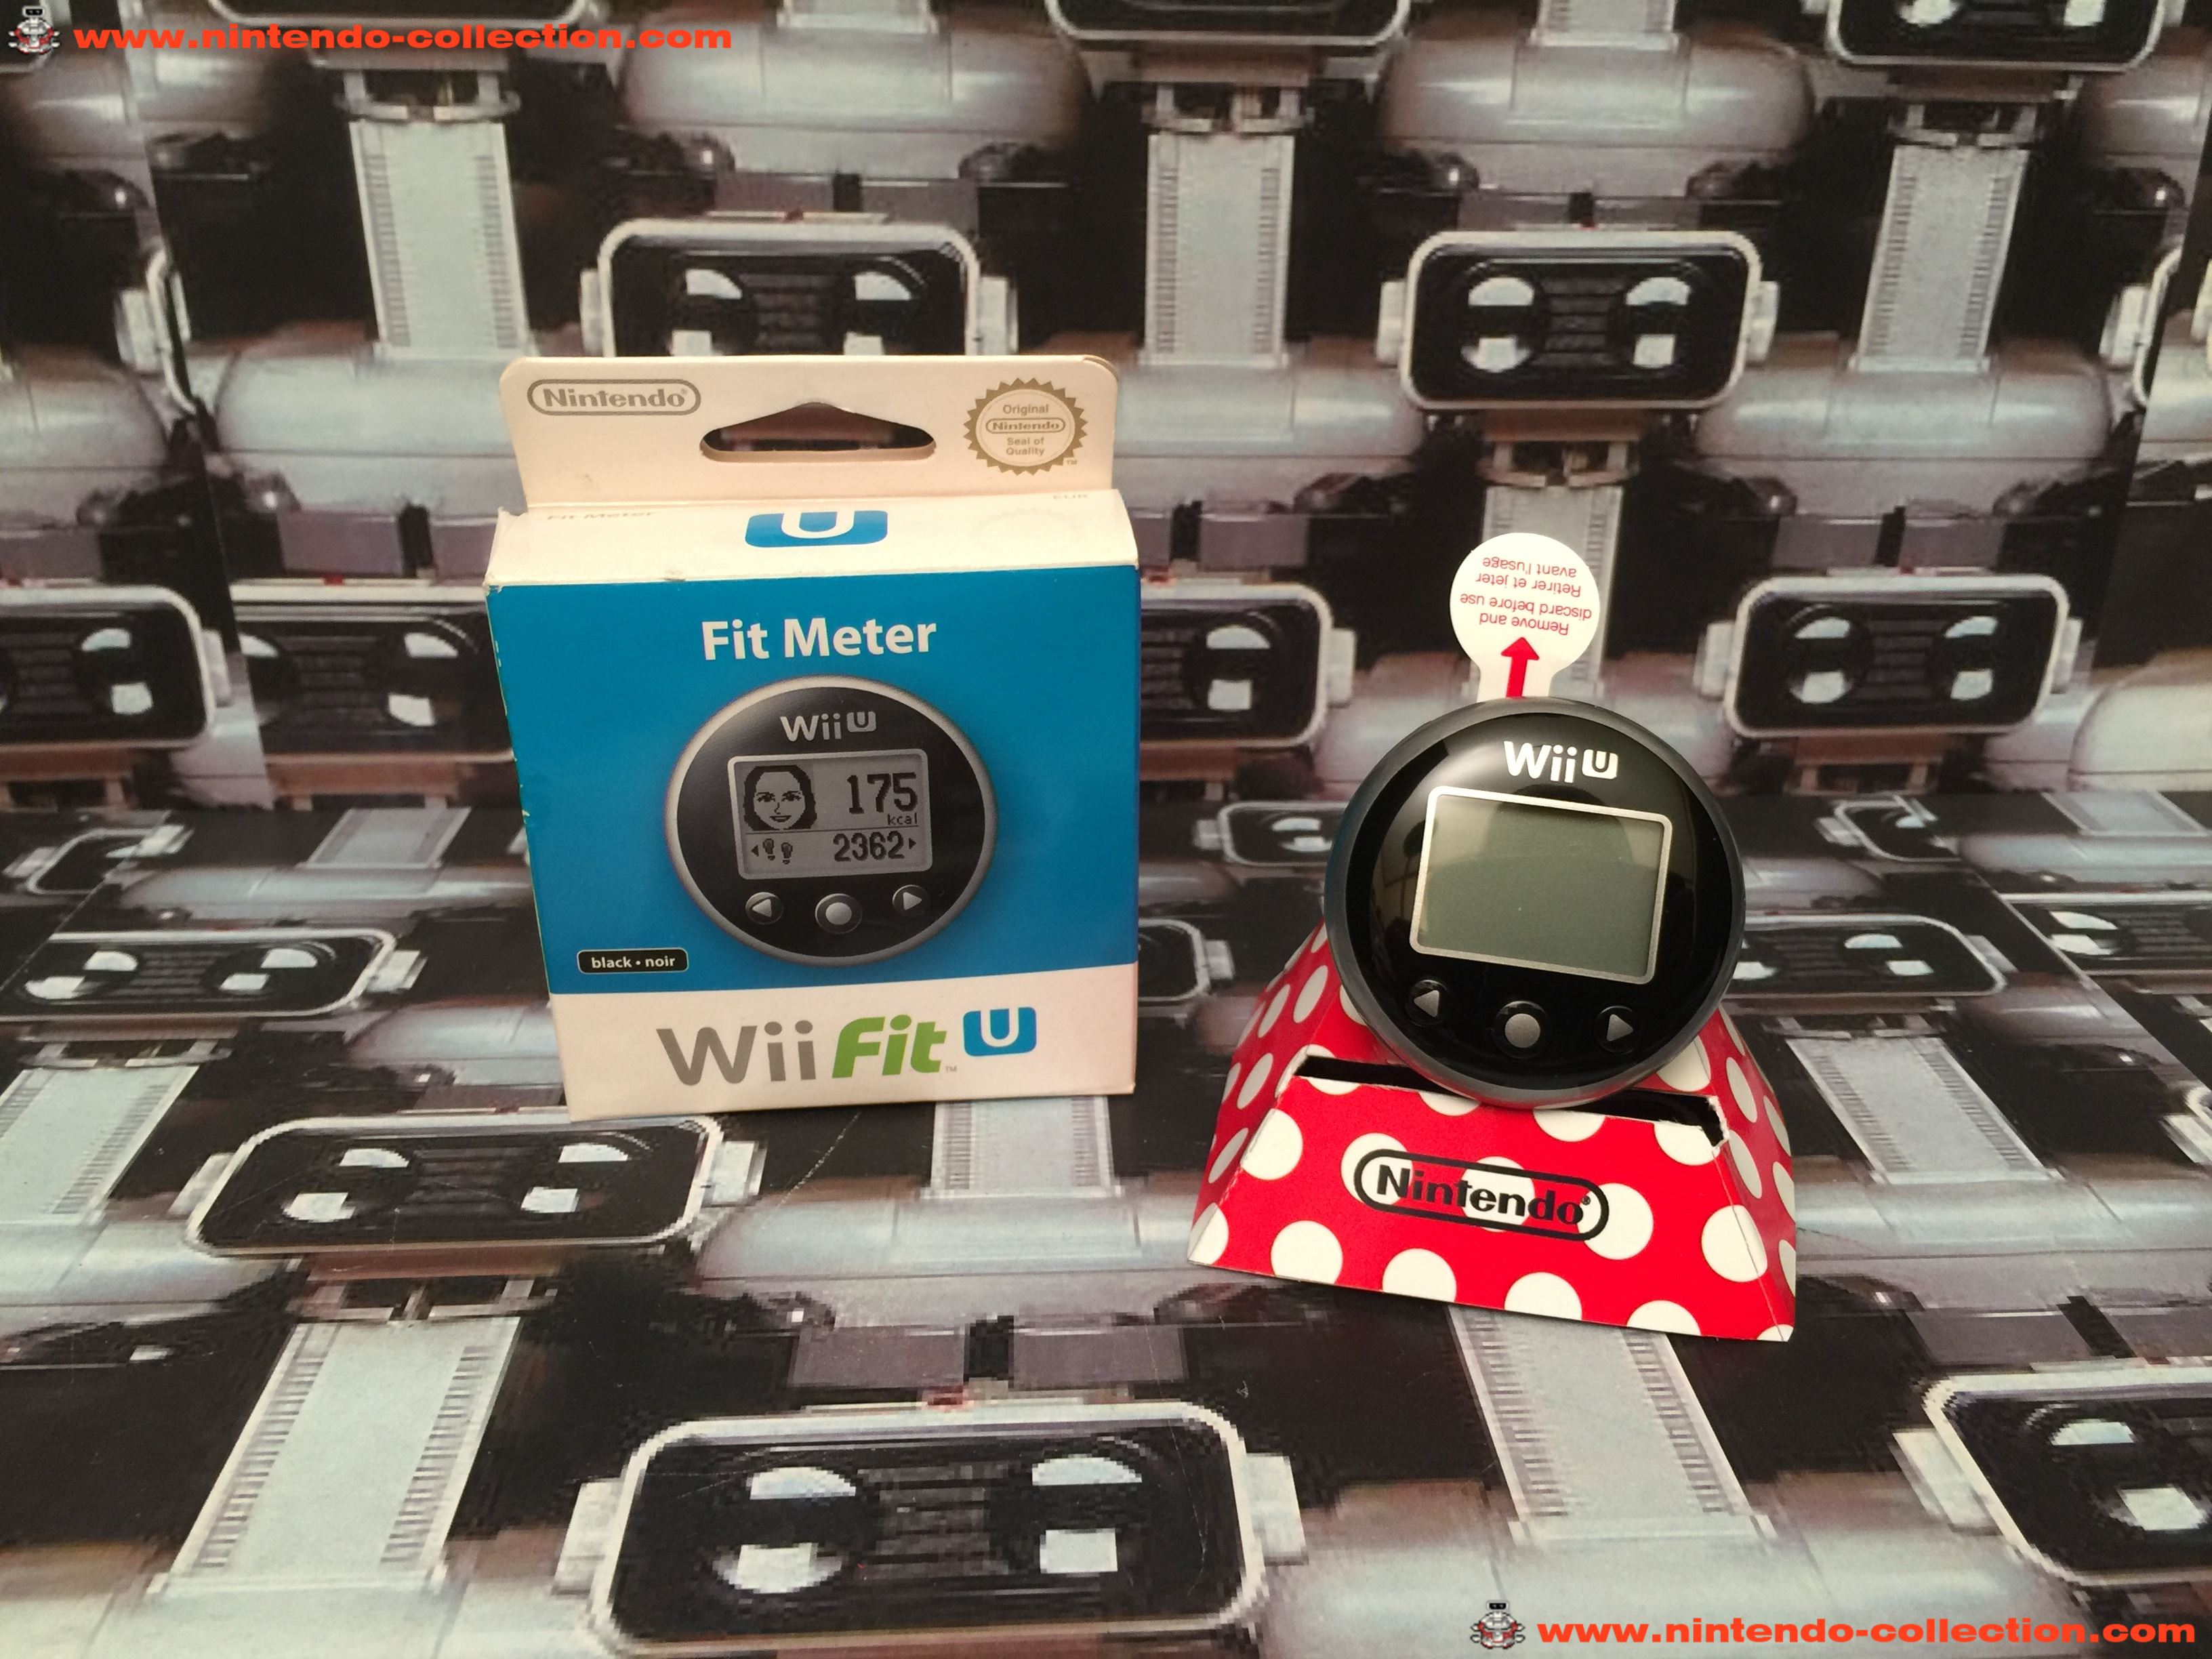 www.nintendo-collection.com - Wii U Mini Nintendo Wii Fit Meter Black Noir